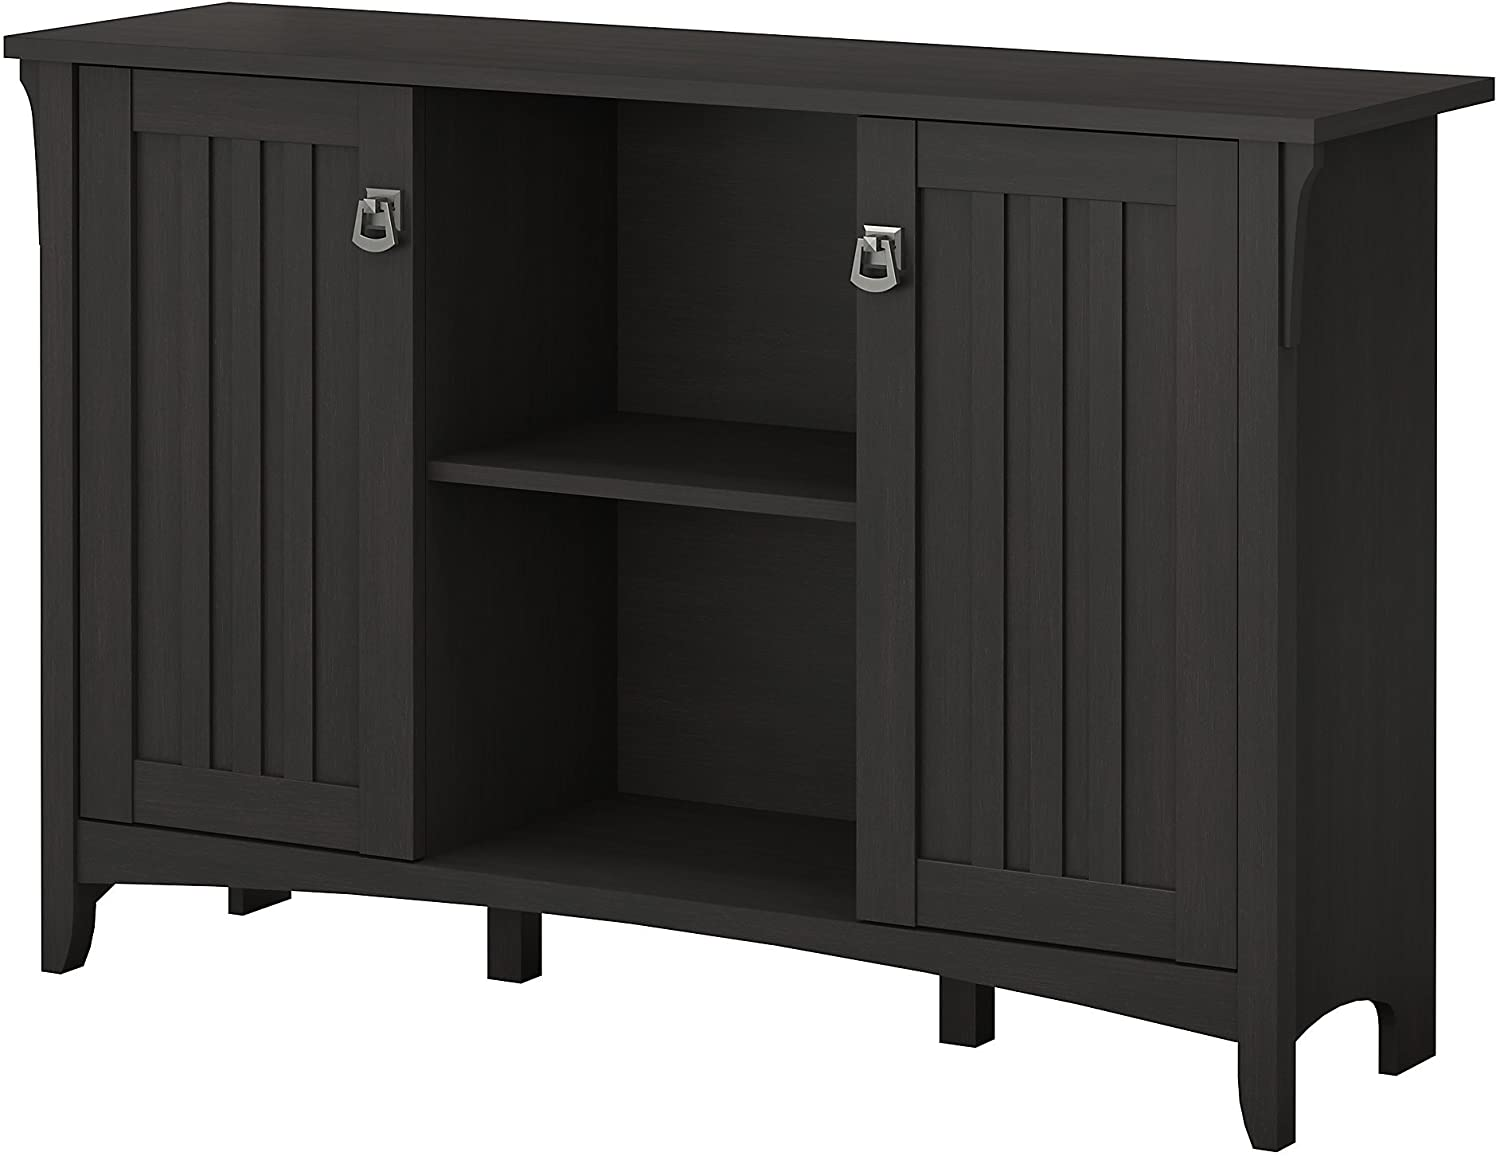 Bush Large-scale sale Rapid rise Furniture Salinas Accent Storage Doors Vint with Cabinet in